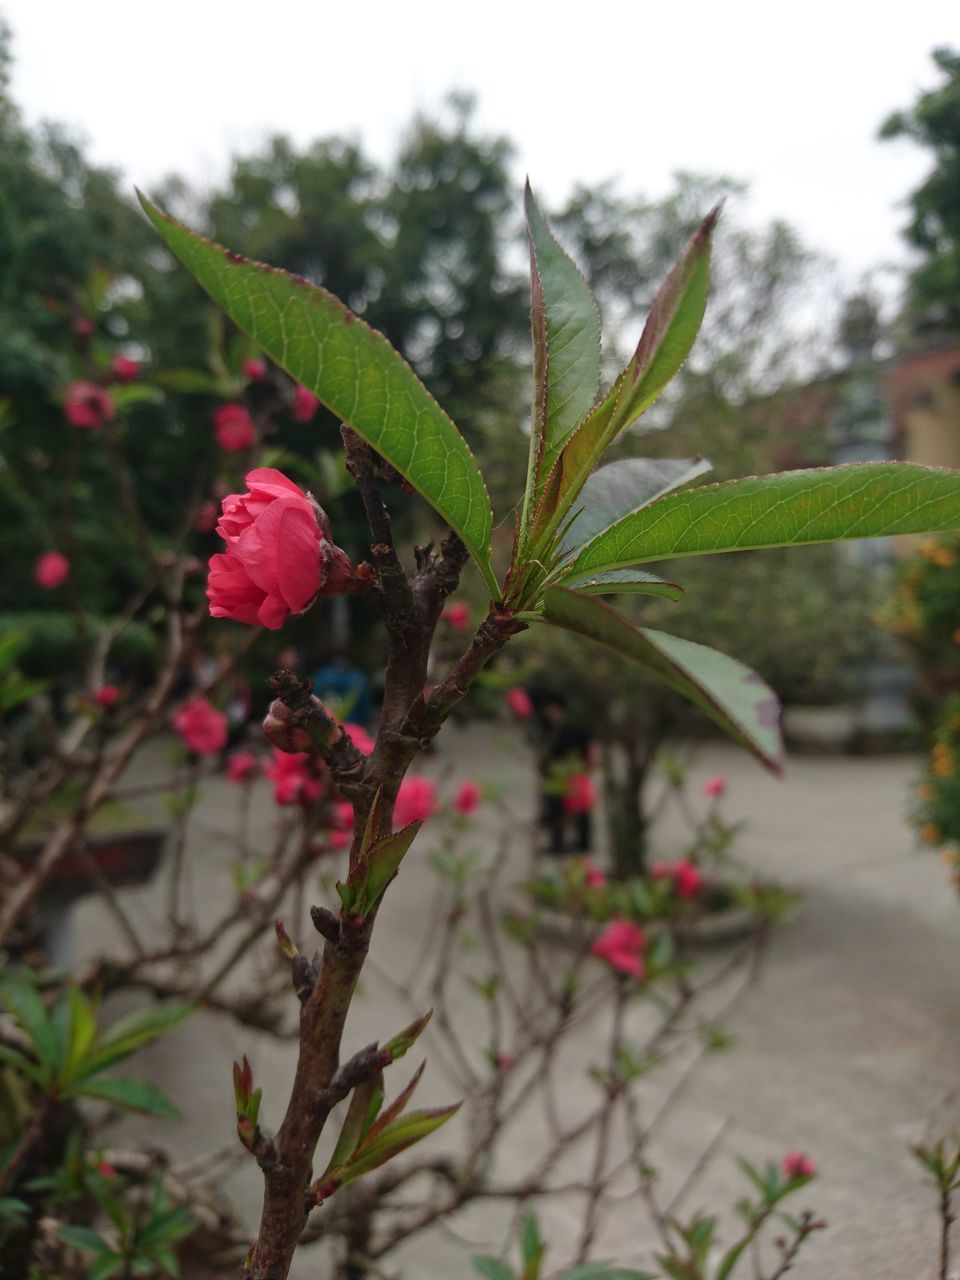 plant, growth, leaf, focus on foreground, nature, green color, freshness, flower, beauty in nature, no people, fragility, day, outdoors, close-up, tree, flower head